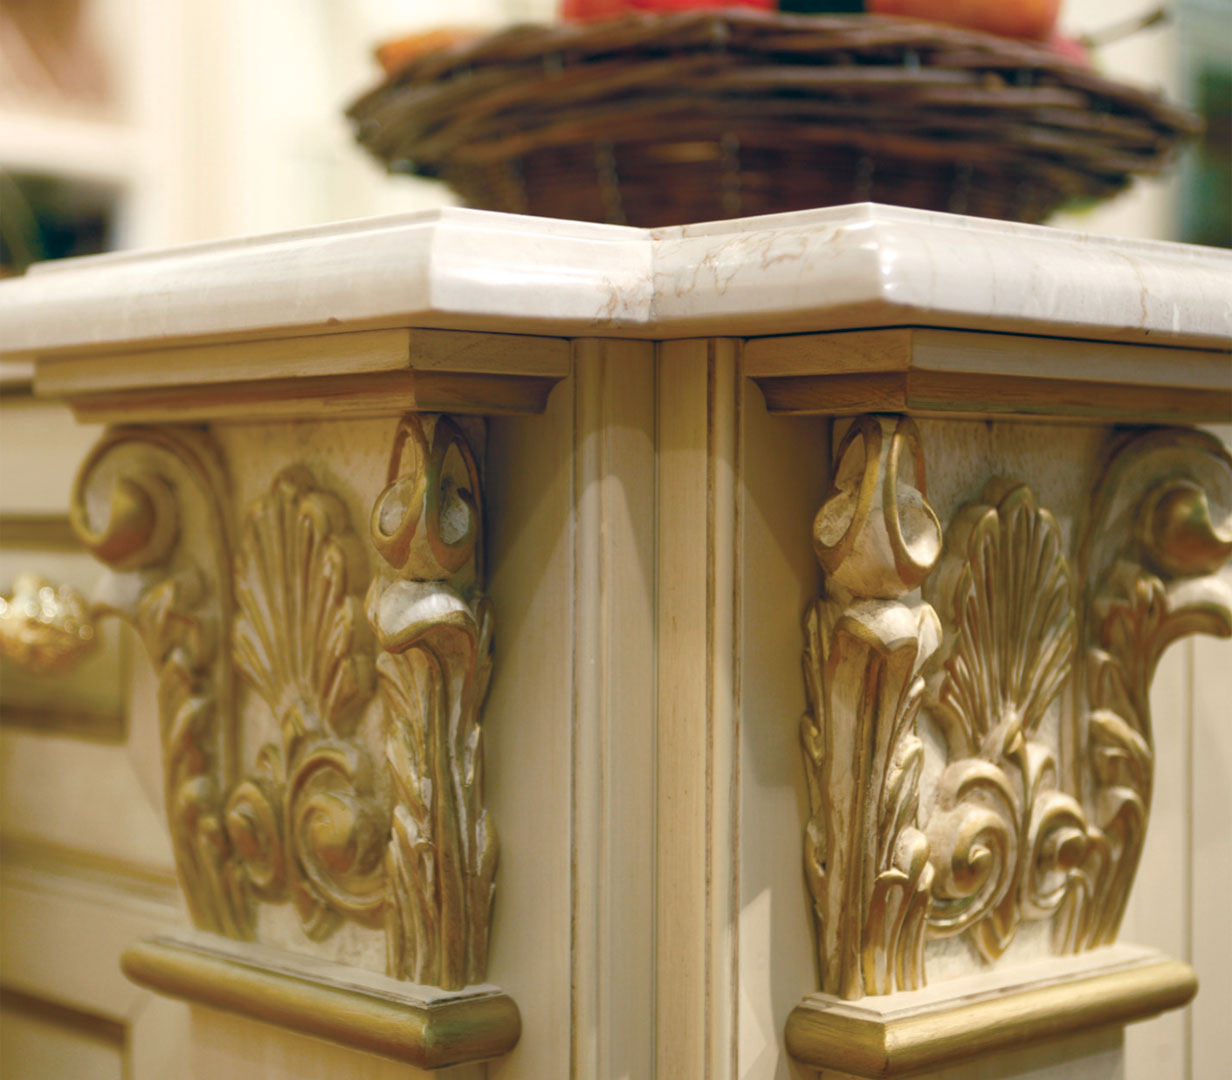 Marble top, hand carved capitals and pilasters decorated with gold foil